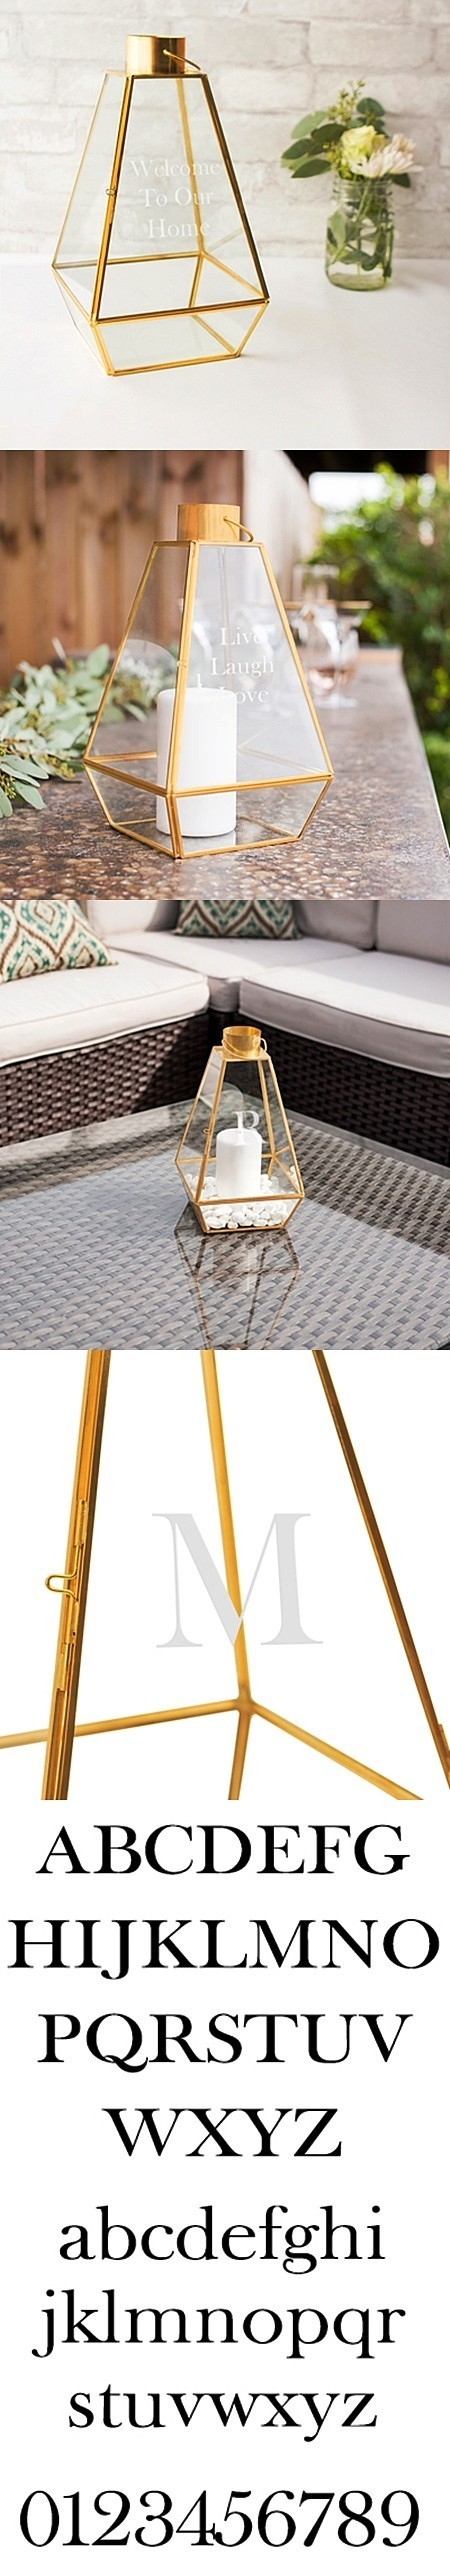 Cathy's Concepts Personalizable Gold-Colored-Metal-Frame Glass Lantern